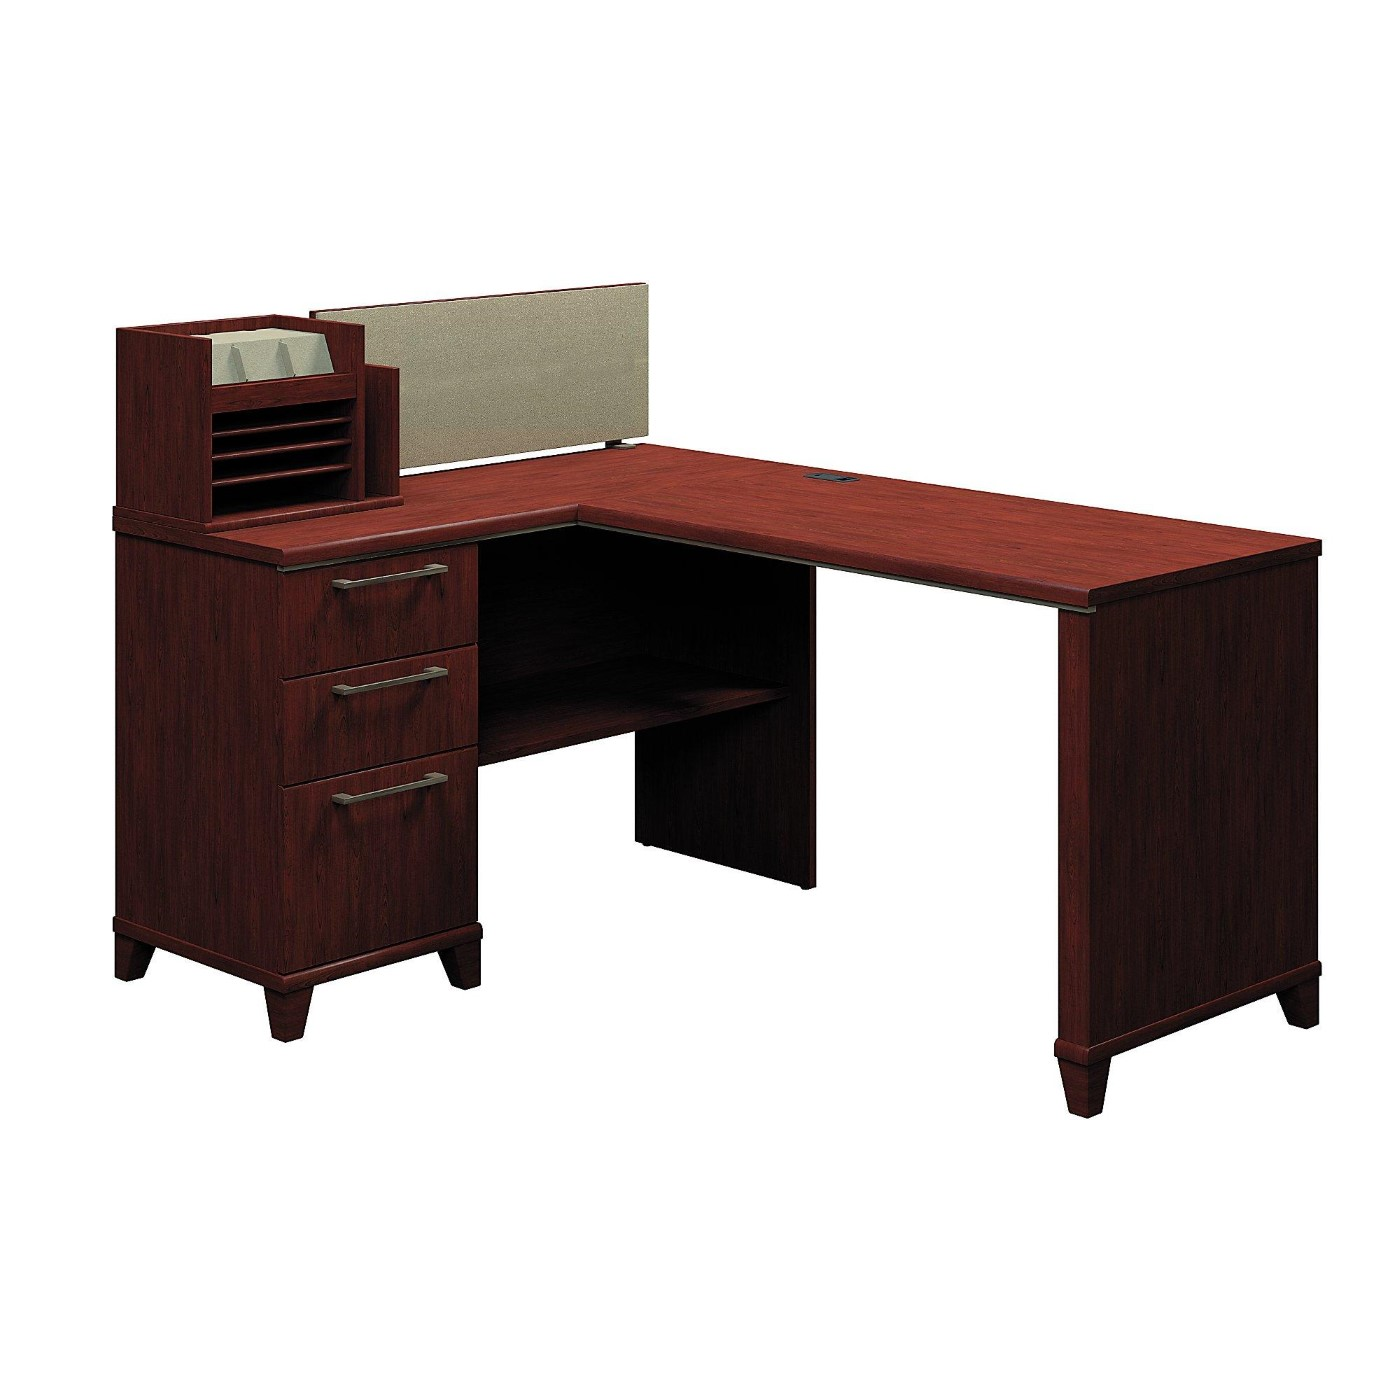 <font color=#c60><b>BUSH BUSINESS FURNITURE ENTERPRISE 60W X 47D CORNER DESK. FREE SHIPPING</font></b>